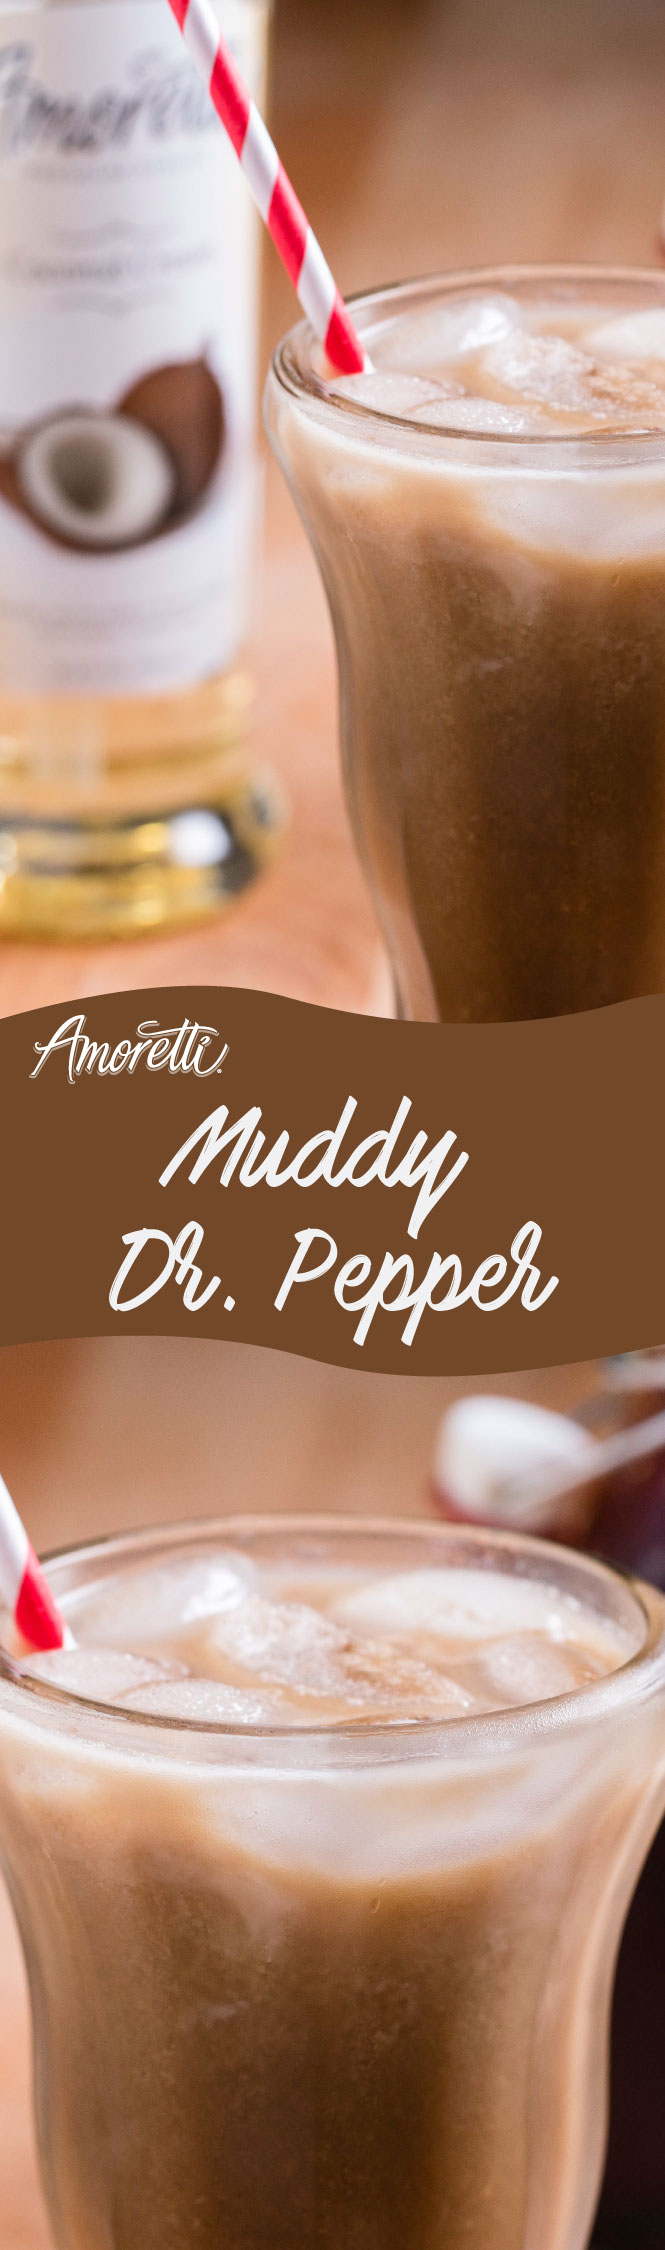 Cool off with a Muddy Dr. Pepper!